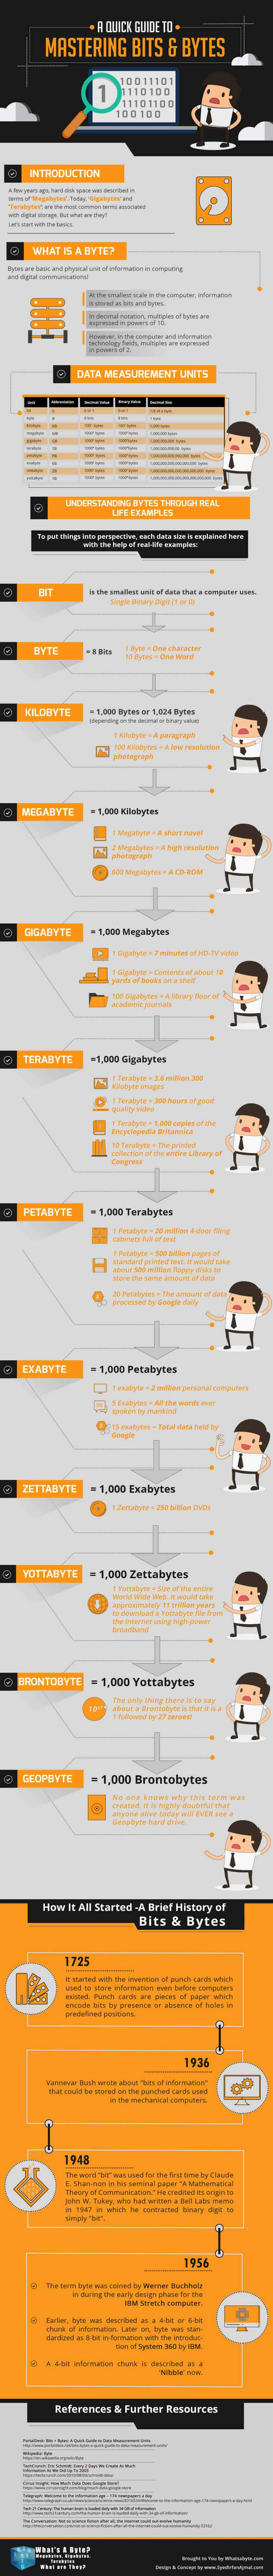 Whatsabyte Bits and Bytes Infographic 1